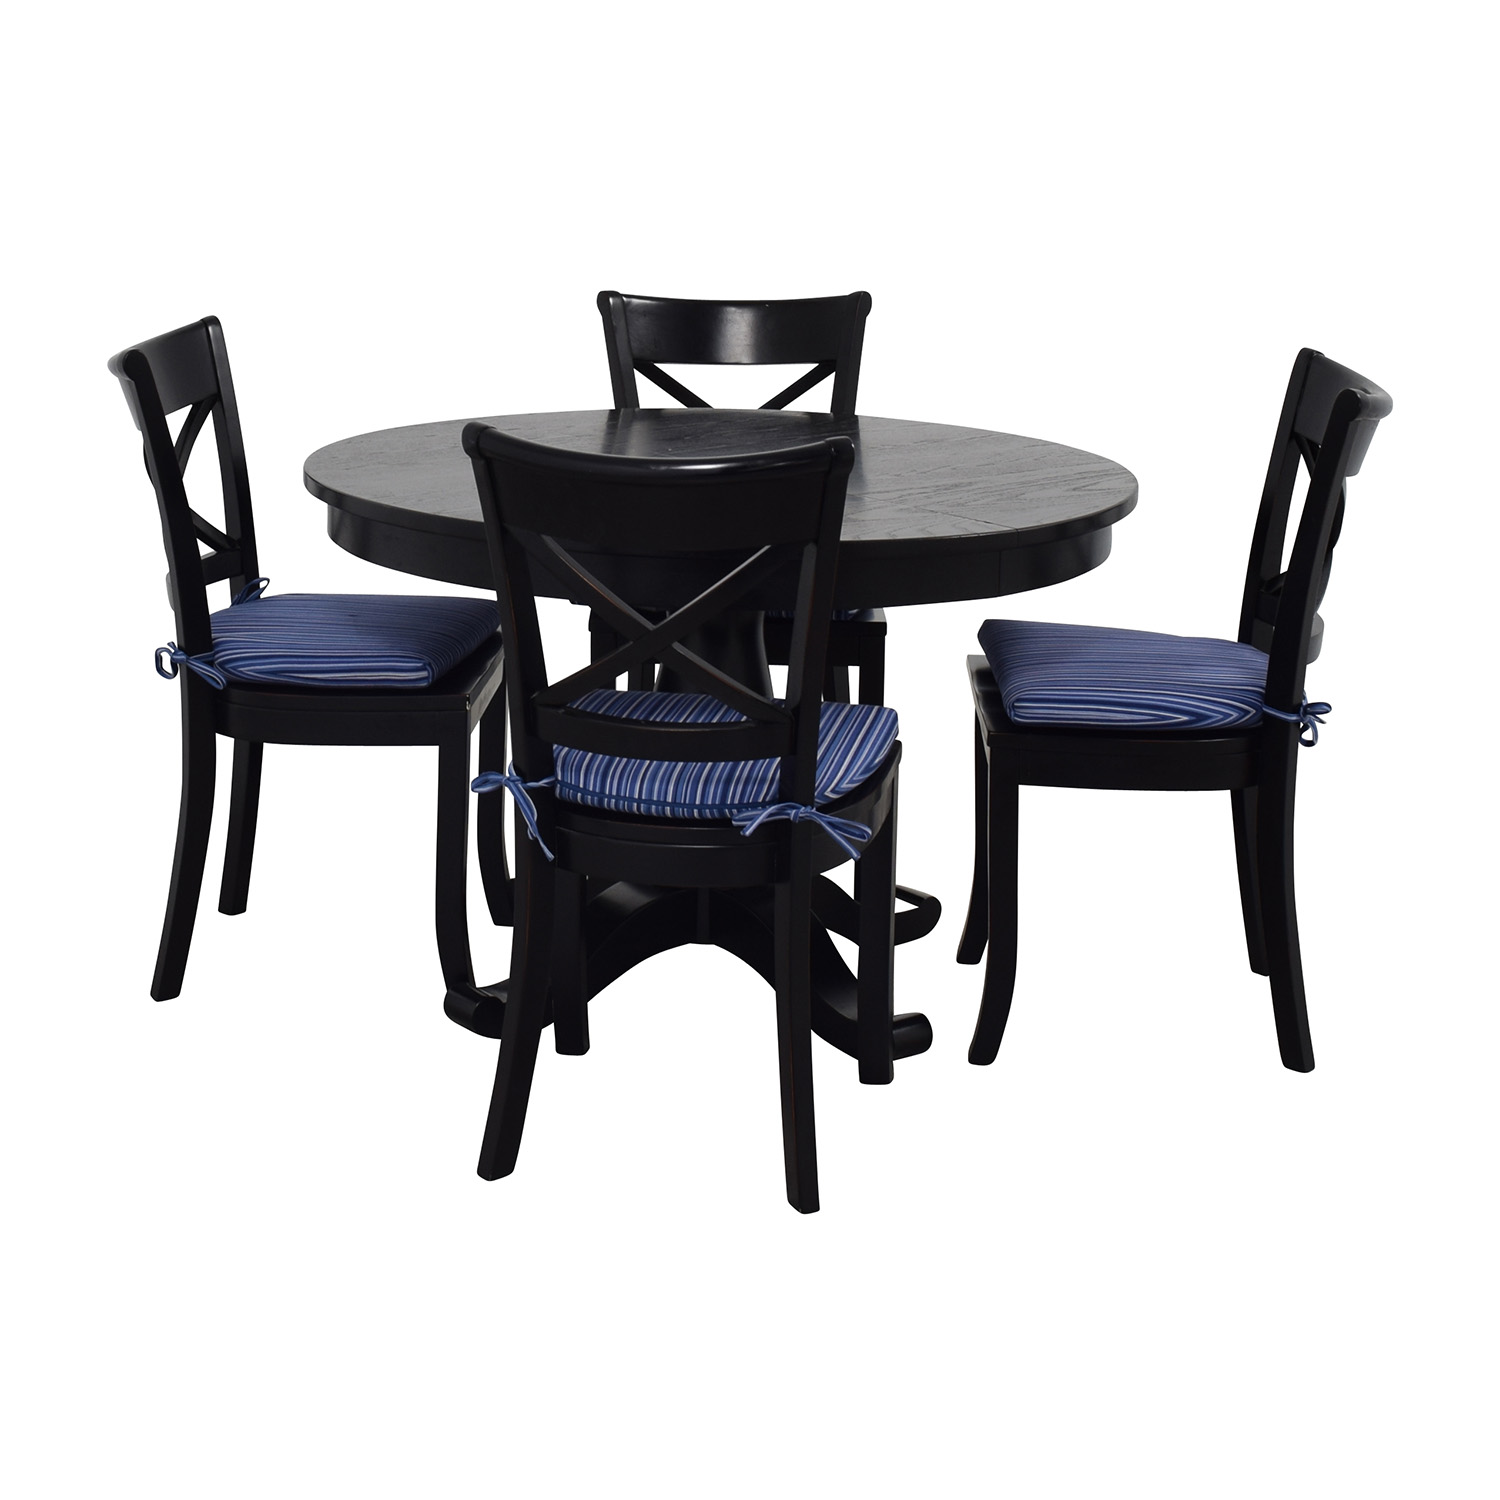 60 OFF Crate Amp Barrel Crate Amp Barrel Table And Chairs